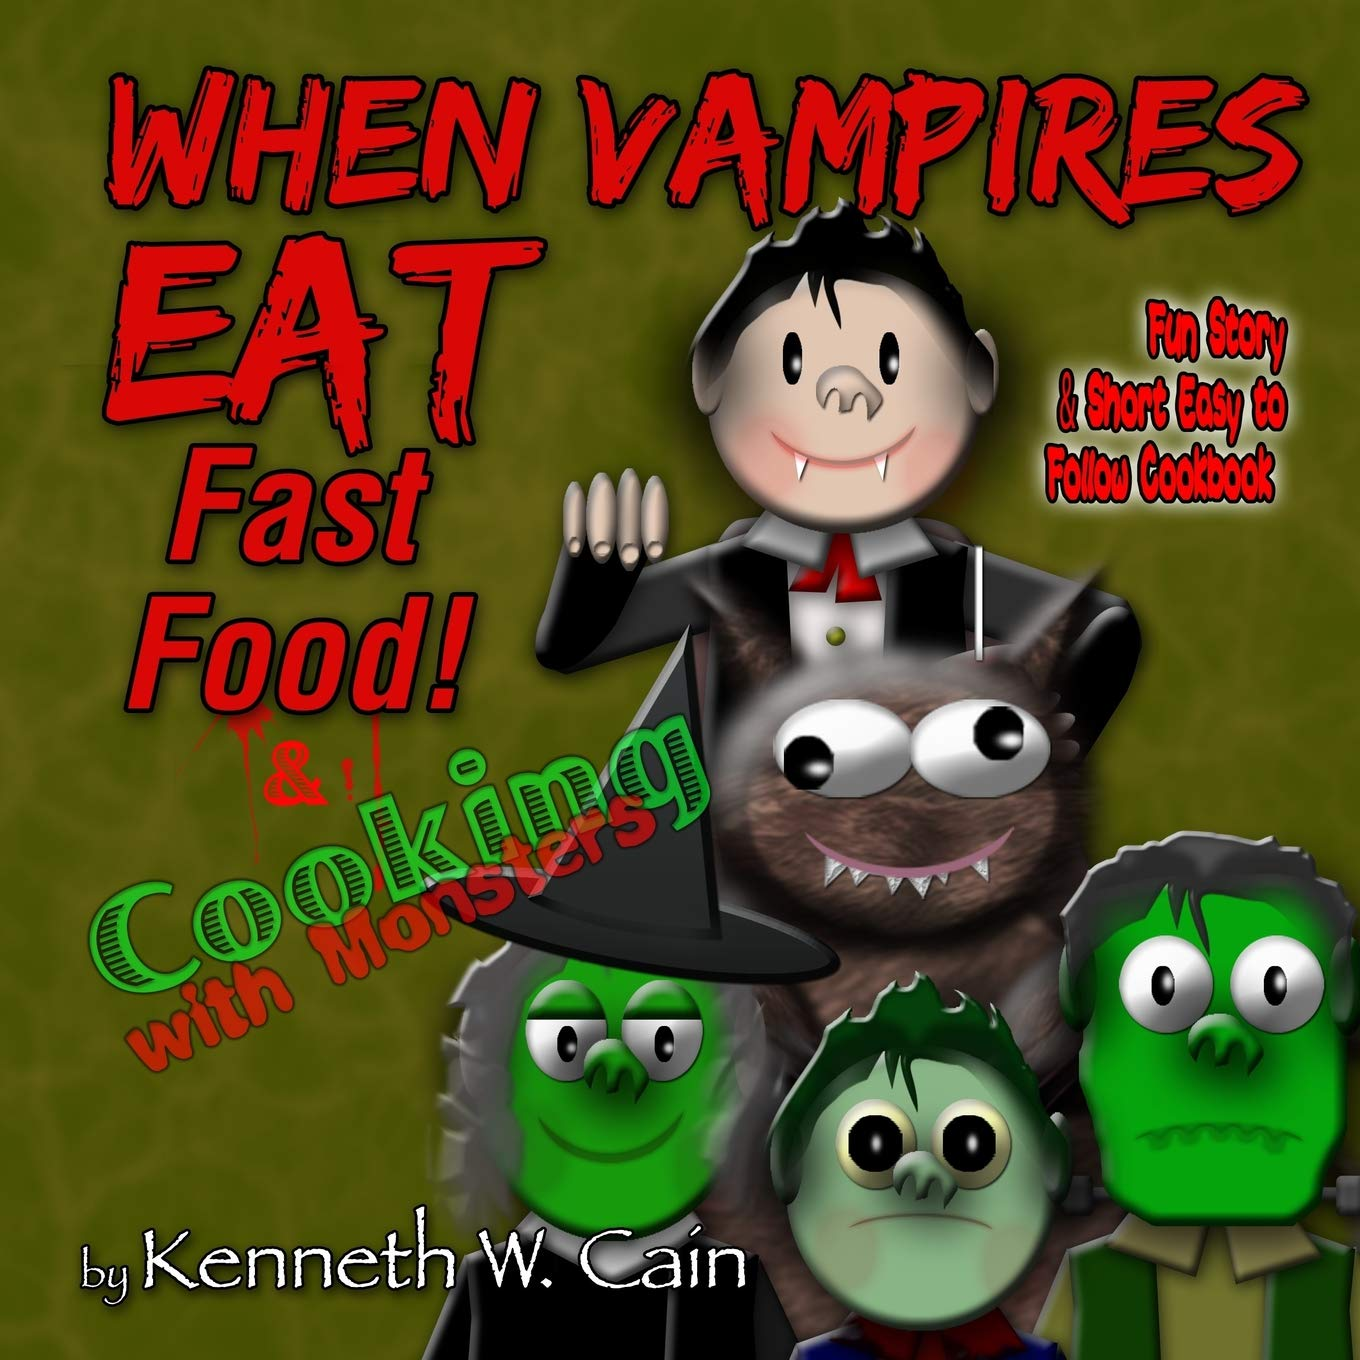 When Vampires Eat Fast Food Cooking With Monsters Fun Story Short Easy To Follow Cookbook Cain Kenneth W 9781537242064 Amazon Com Books